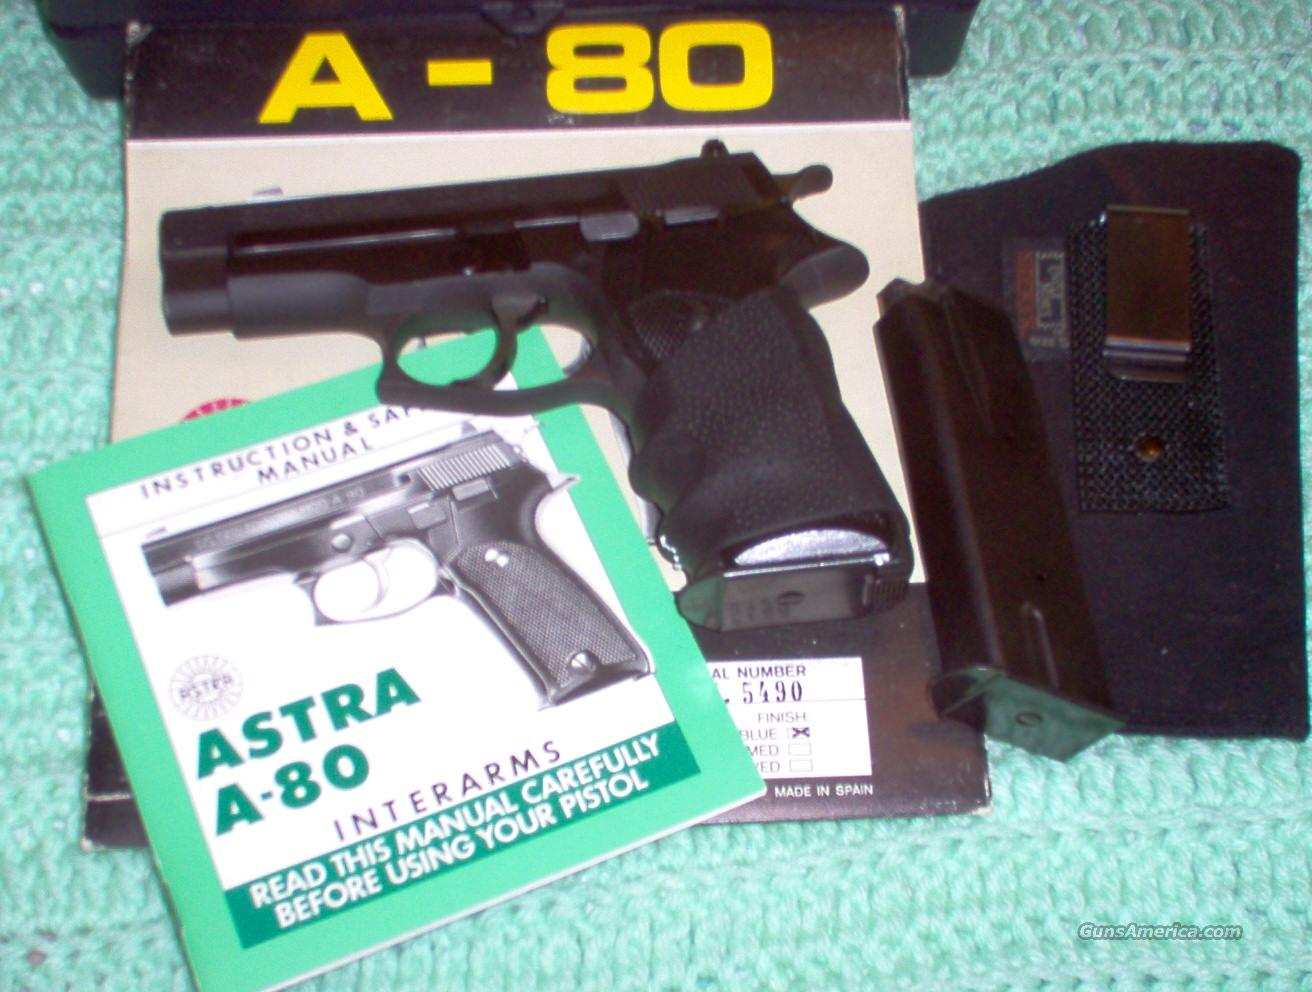 Astra A-80 .45 ACP with Accessories  Guns > Pistols > Astra Pistols